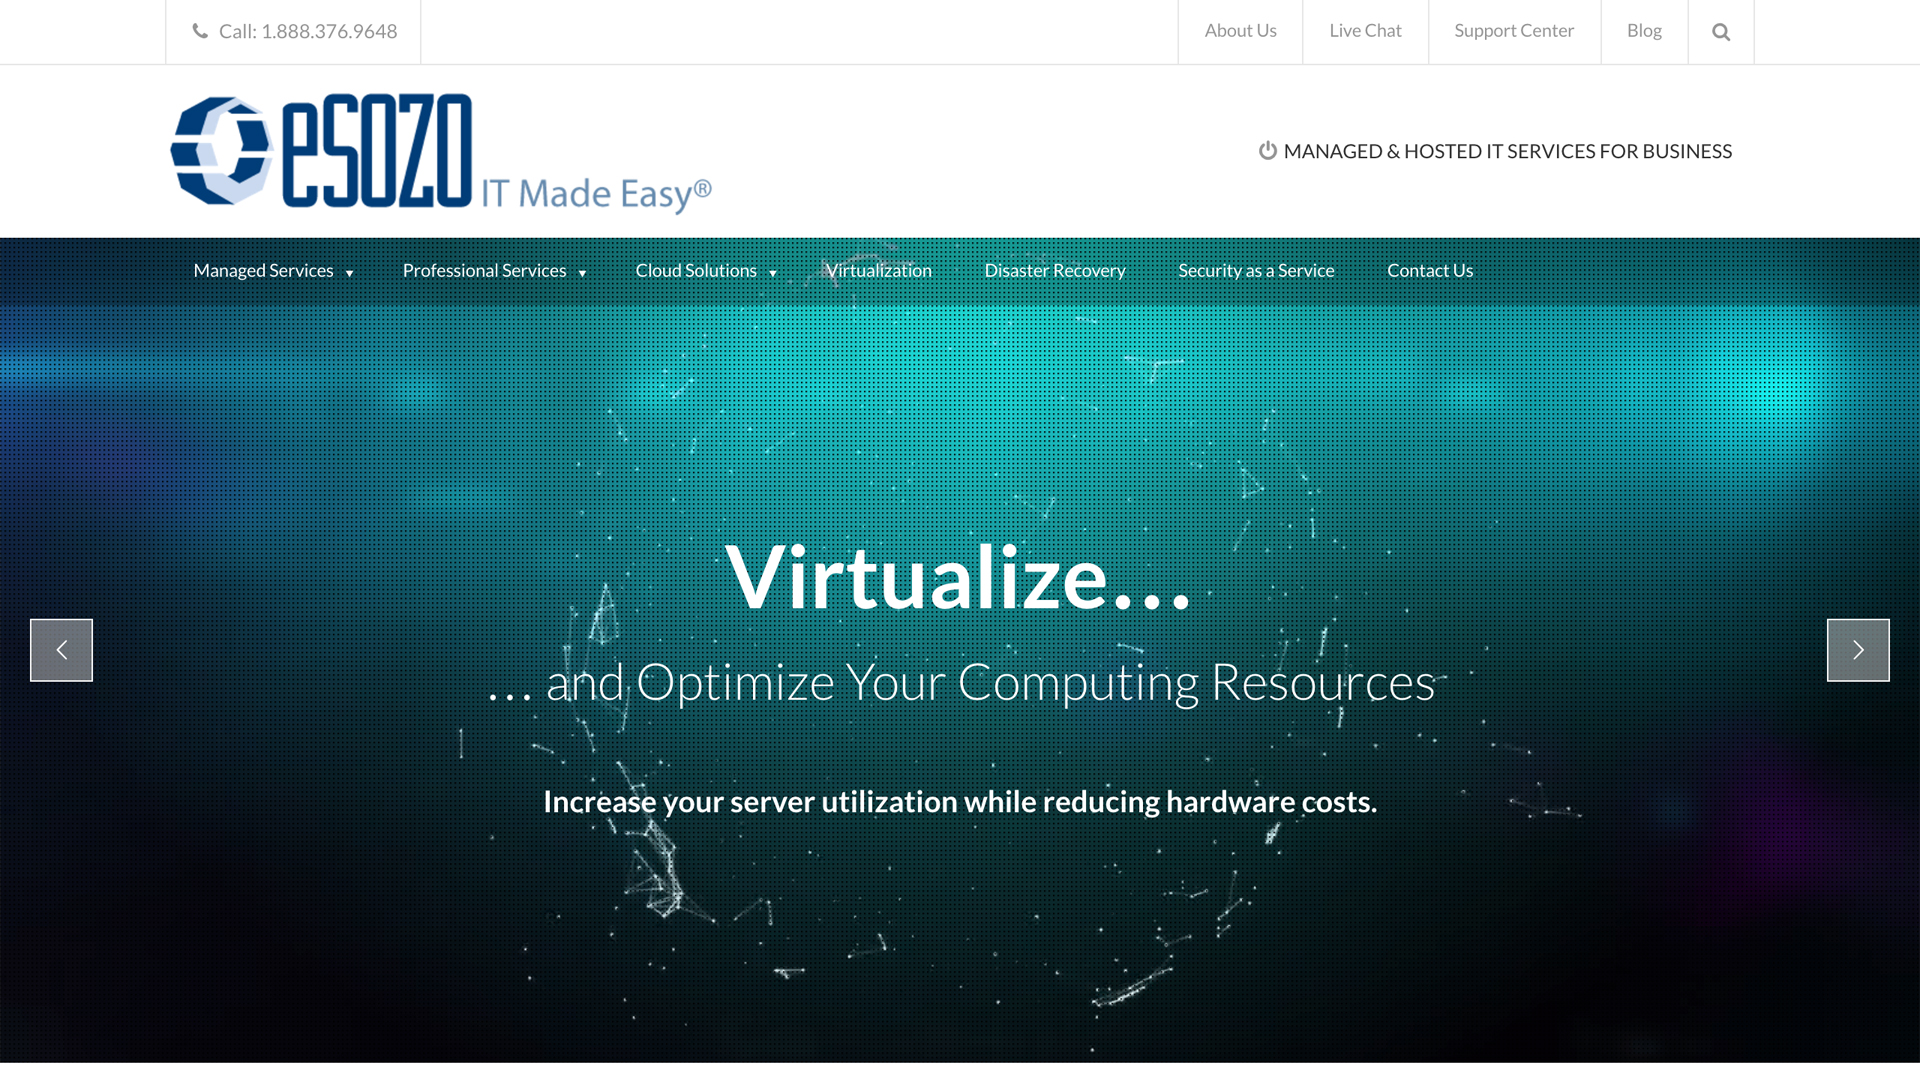 eSOZO Computer & Network Services  (IT services) ** FEATURED PAGE